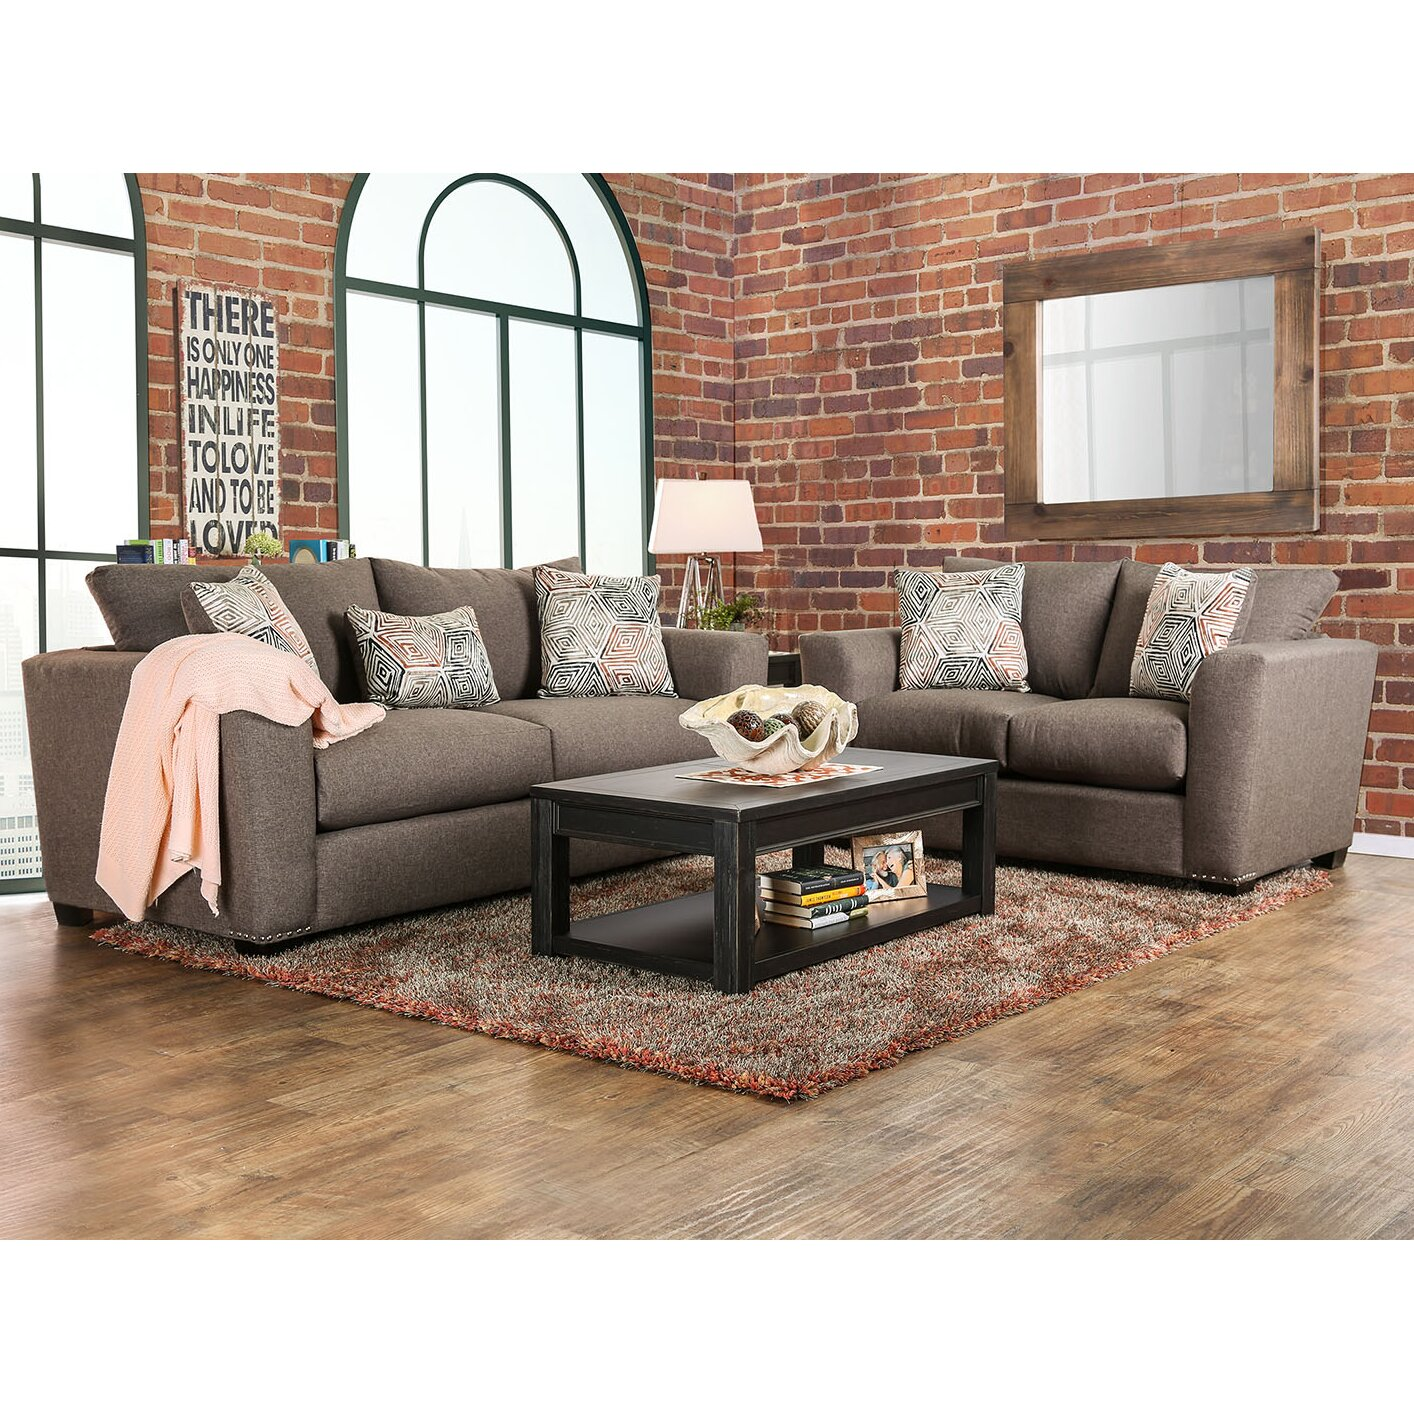 A j homes studio bensen 3 piece living room set wayfair for Living room 3 piece sets